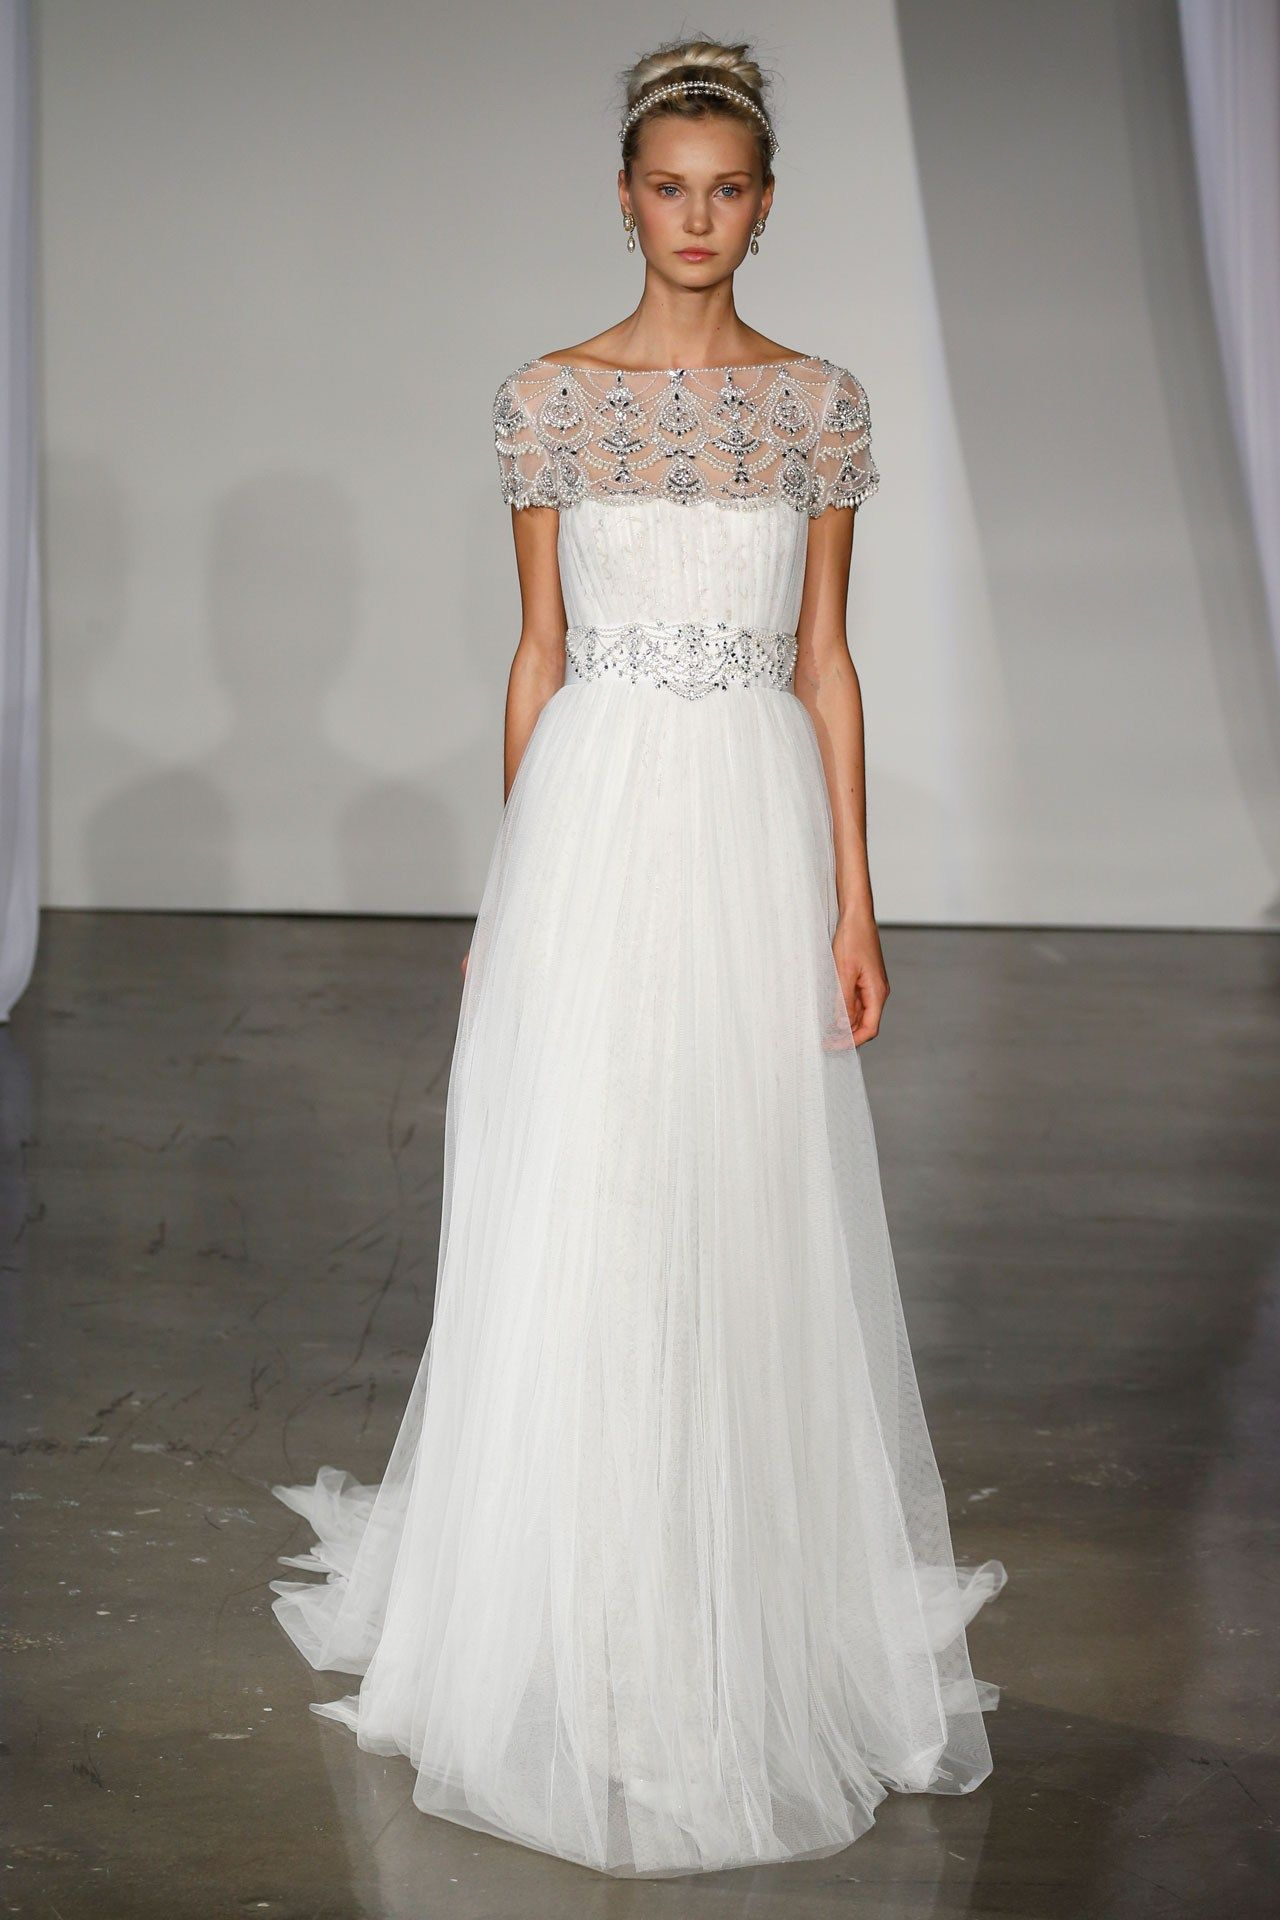 White and silver wedding dresses  Wedding Dresses  The Ultimate Gallery BridesMagazine